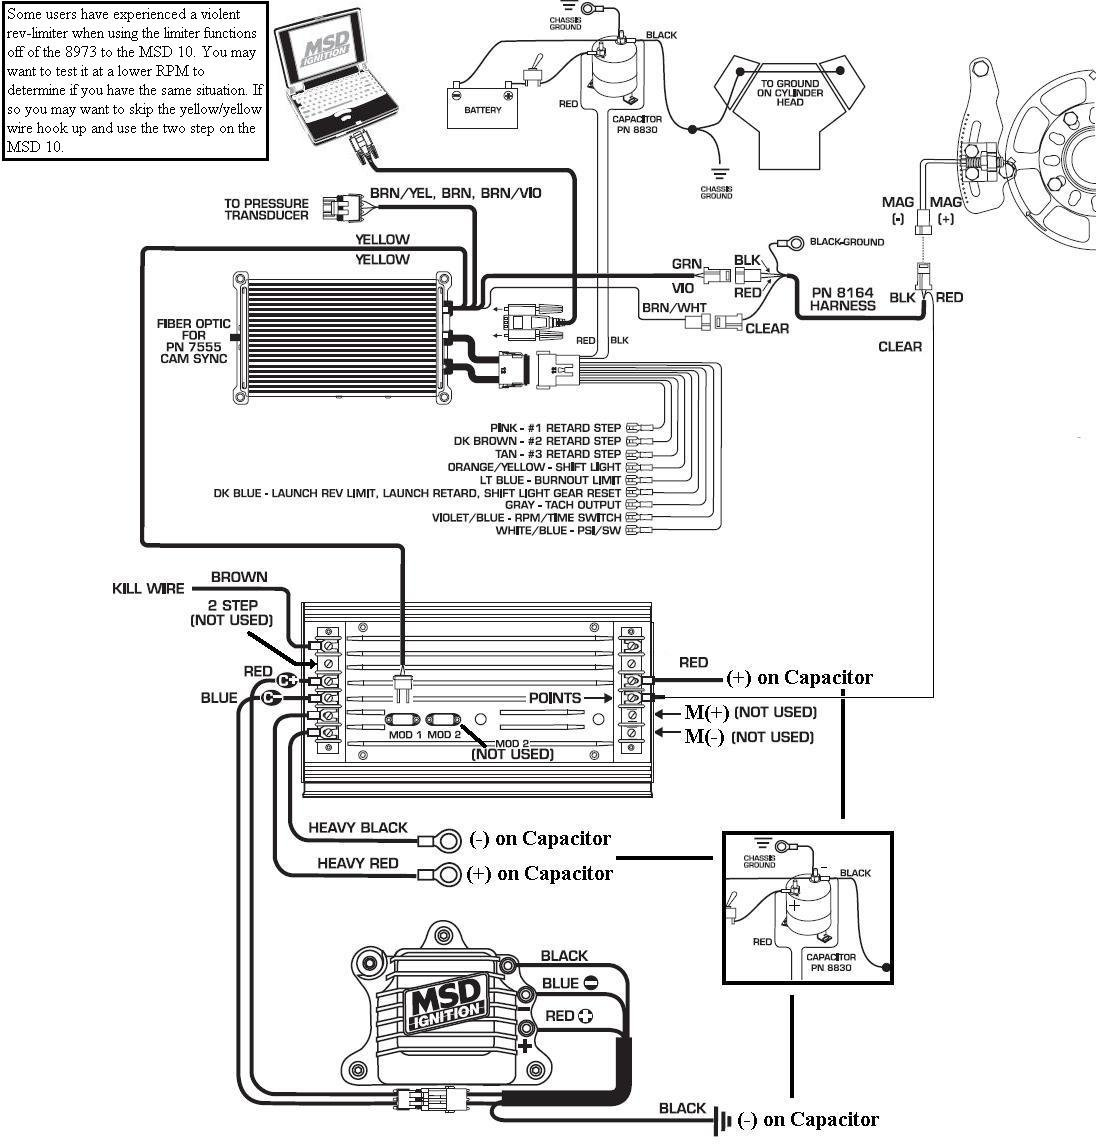 Jacobsen Wiring Diagram likewise 1989 Ford Pick Up Coil Wiring also Wiring Diagram In Addition Small Cap Gm Hei Distributor likewise Msd 6al Box Wiring Diagram together with Wiring Diagram For Pertronix Ignition. on msd 6al wiring diagram mustang